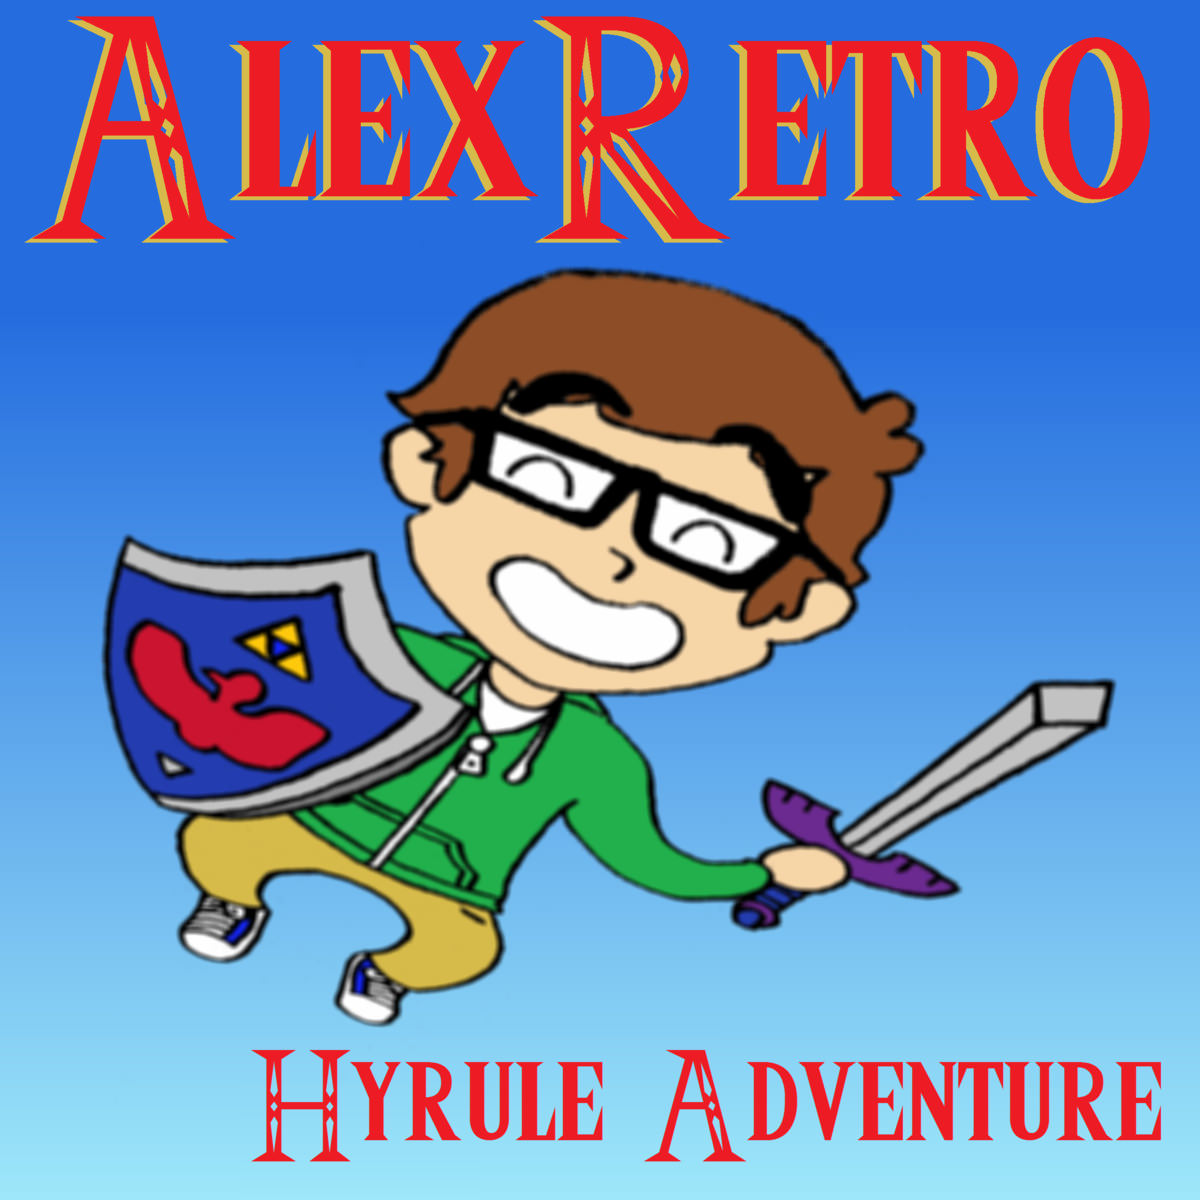 Alex-Retro-hyrule-adventure